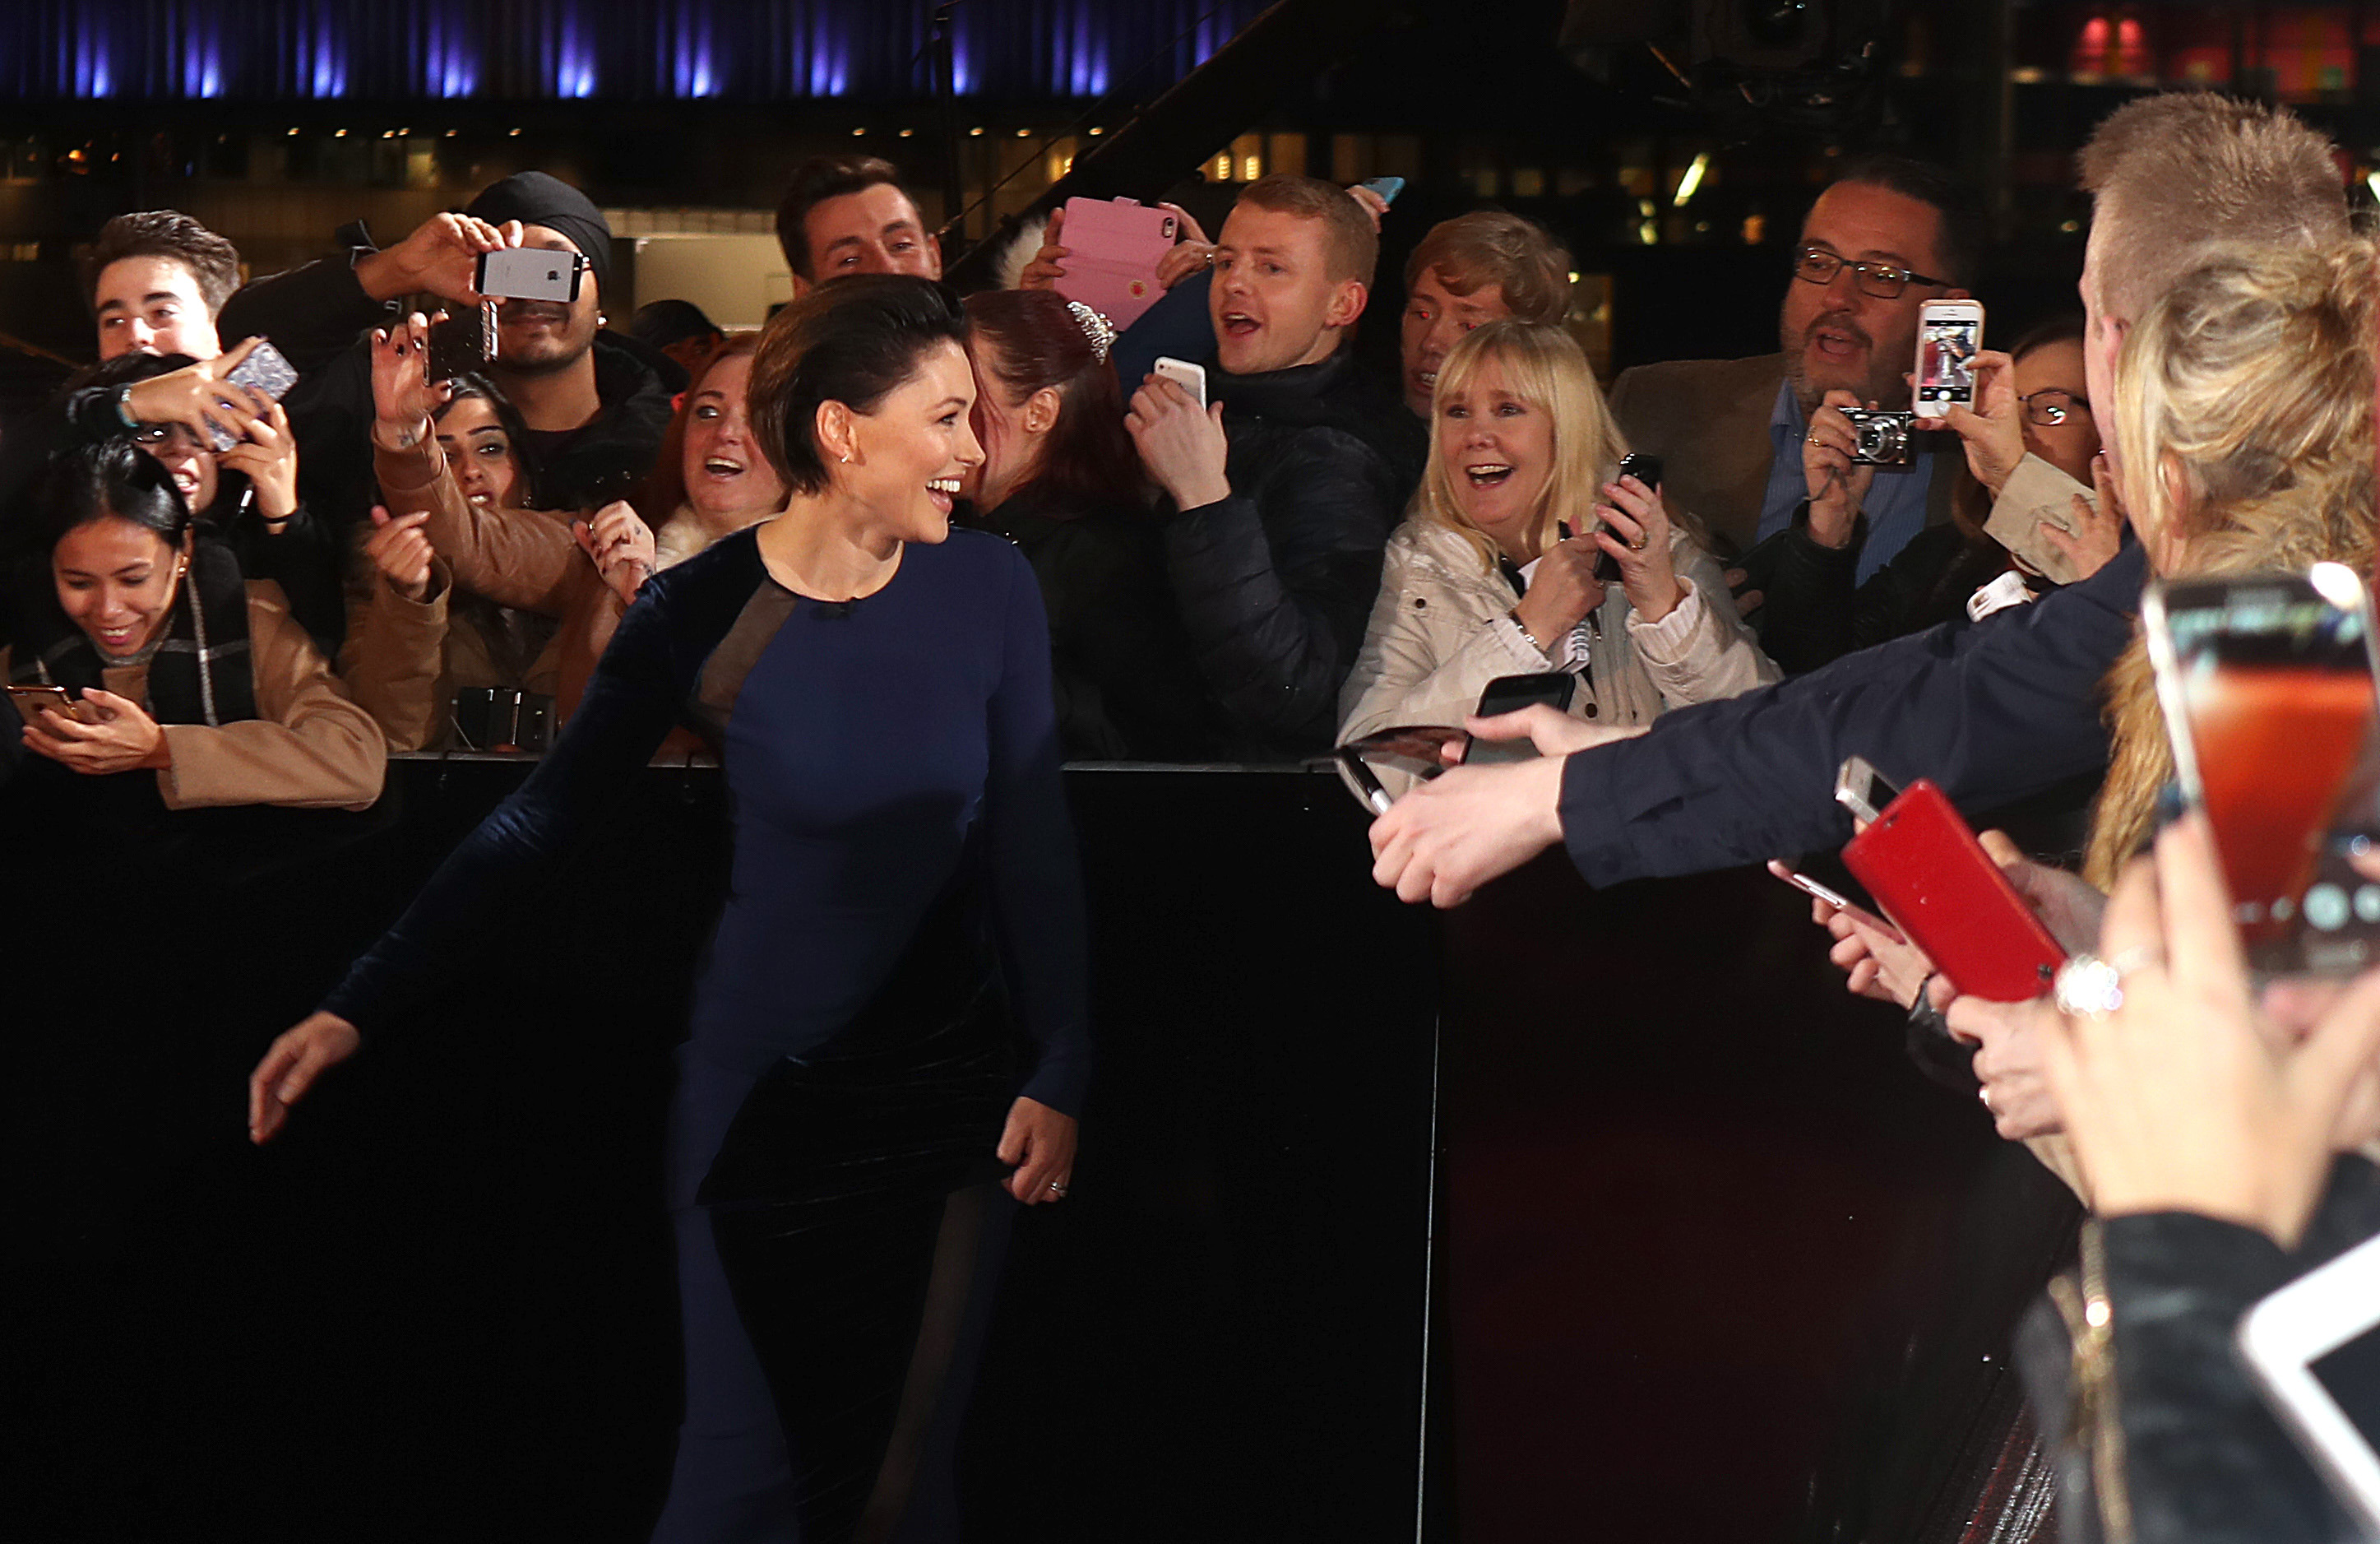 Emma Willis arriving for The Voice UK auditions at The Voice UK Dock 10, Media City Blue, Salford, Manchester.